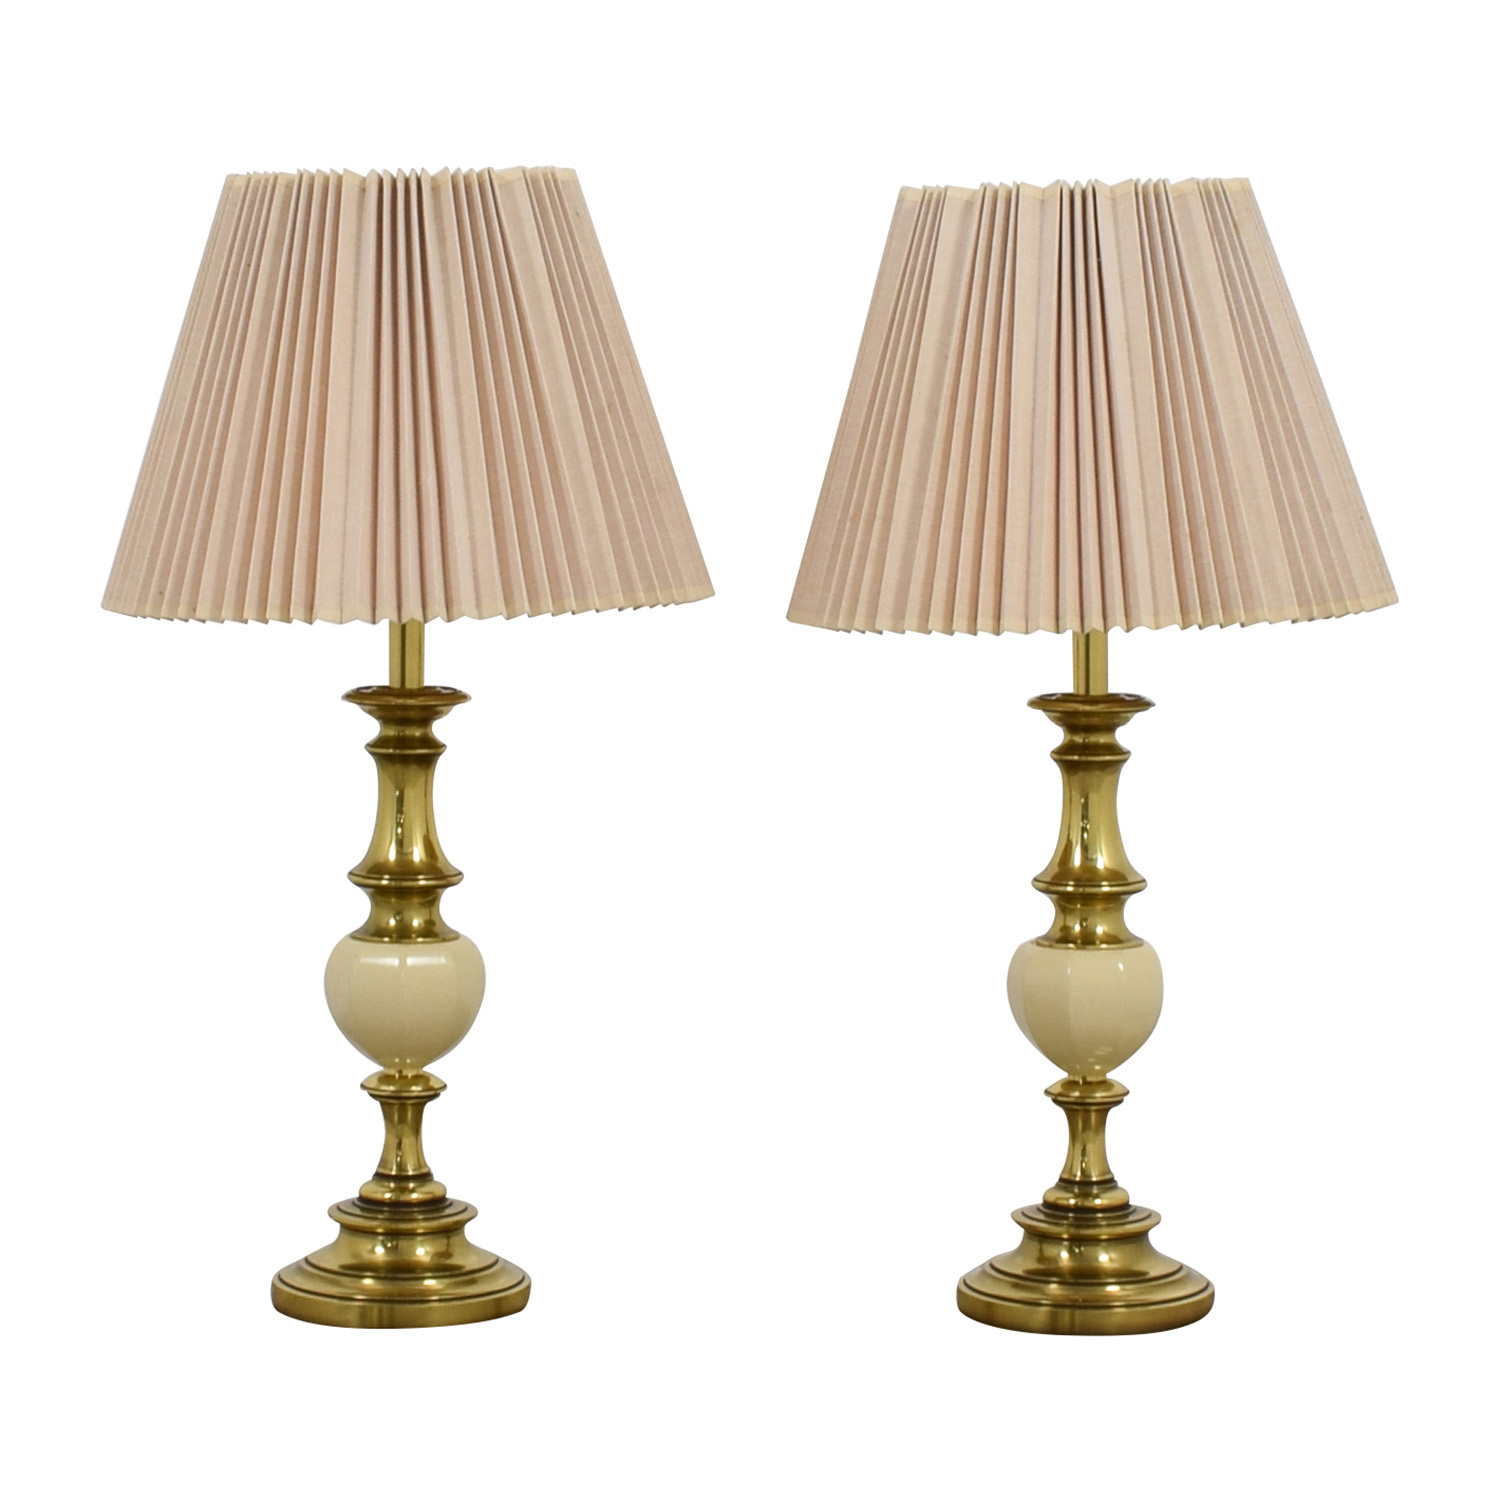 shop Brass and White Urn Table Lamps with Accordion Shades